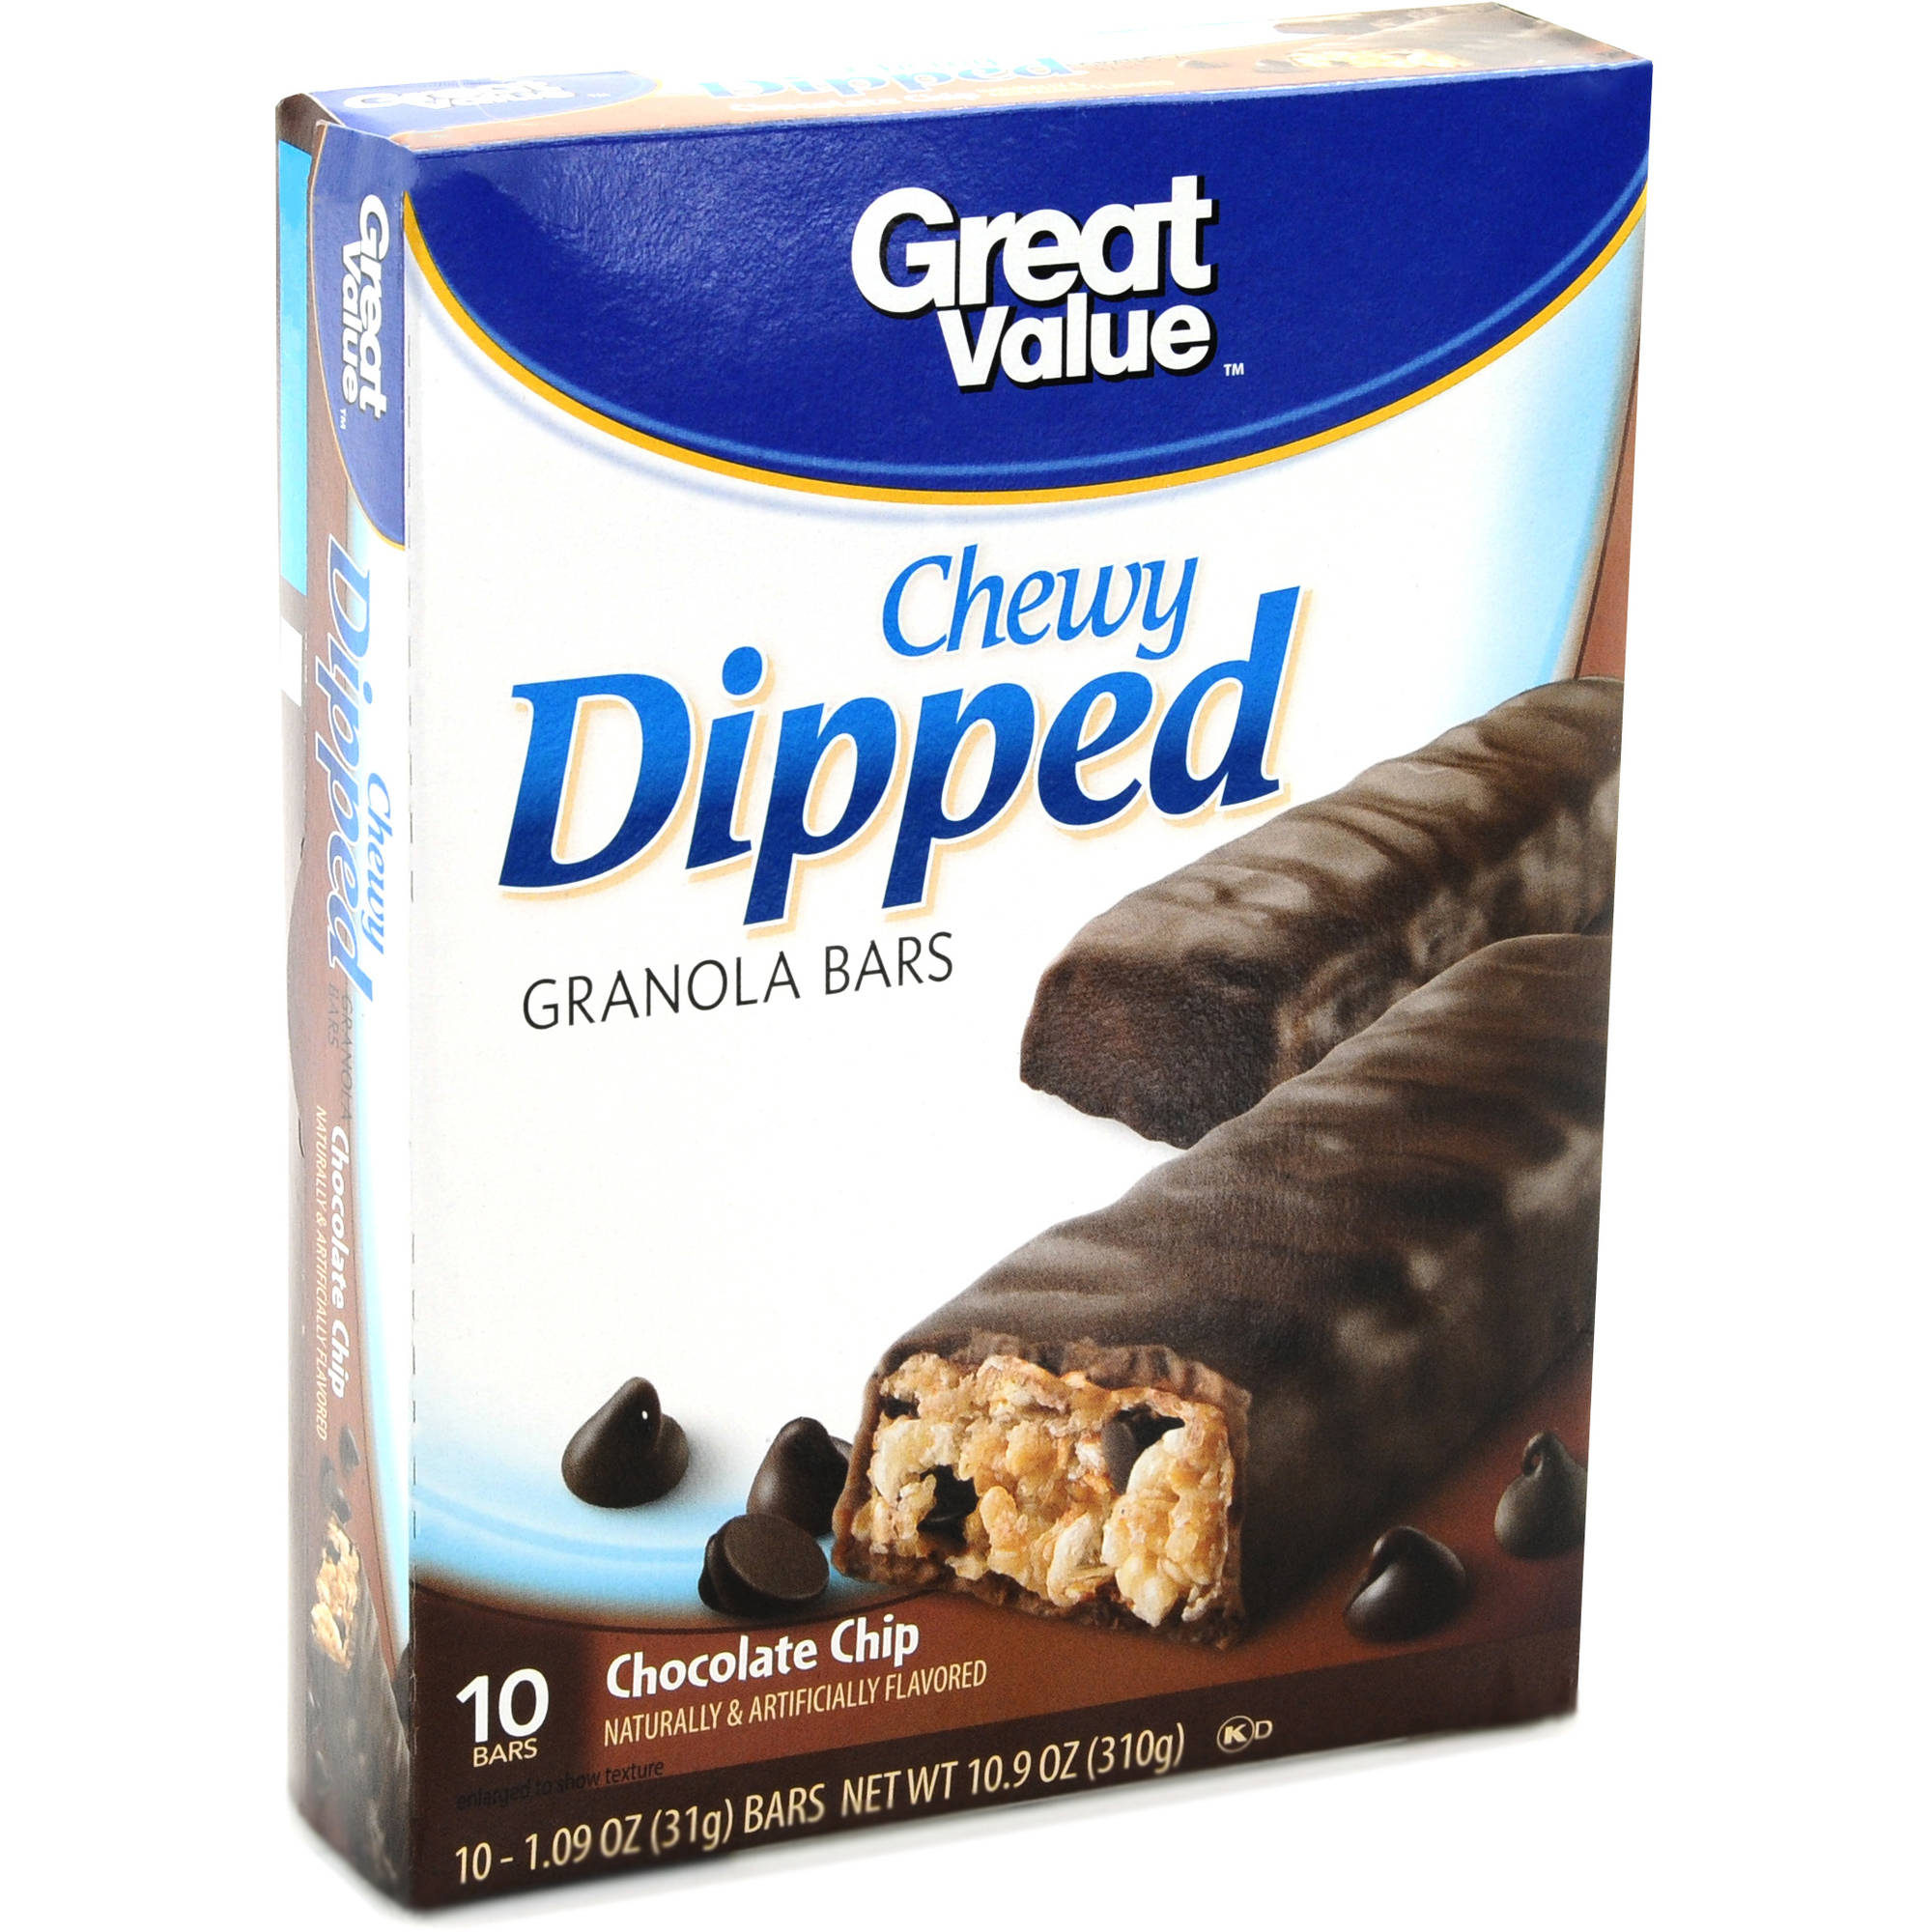 Great Value Chewy Dipped Chocolate Chip Granola Bars